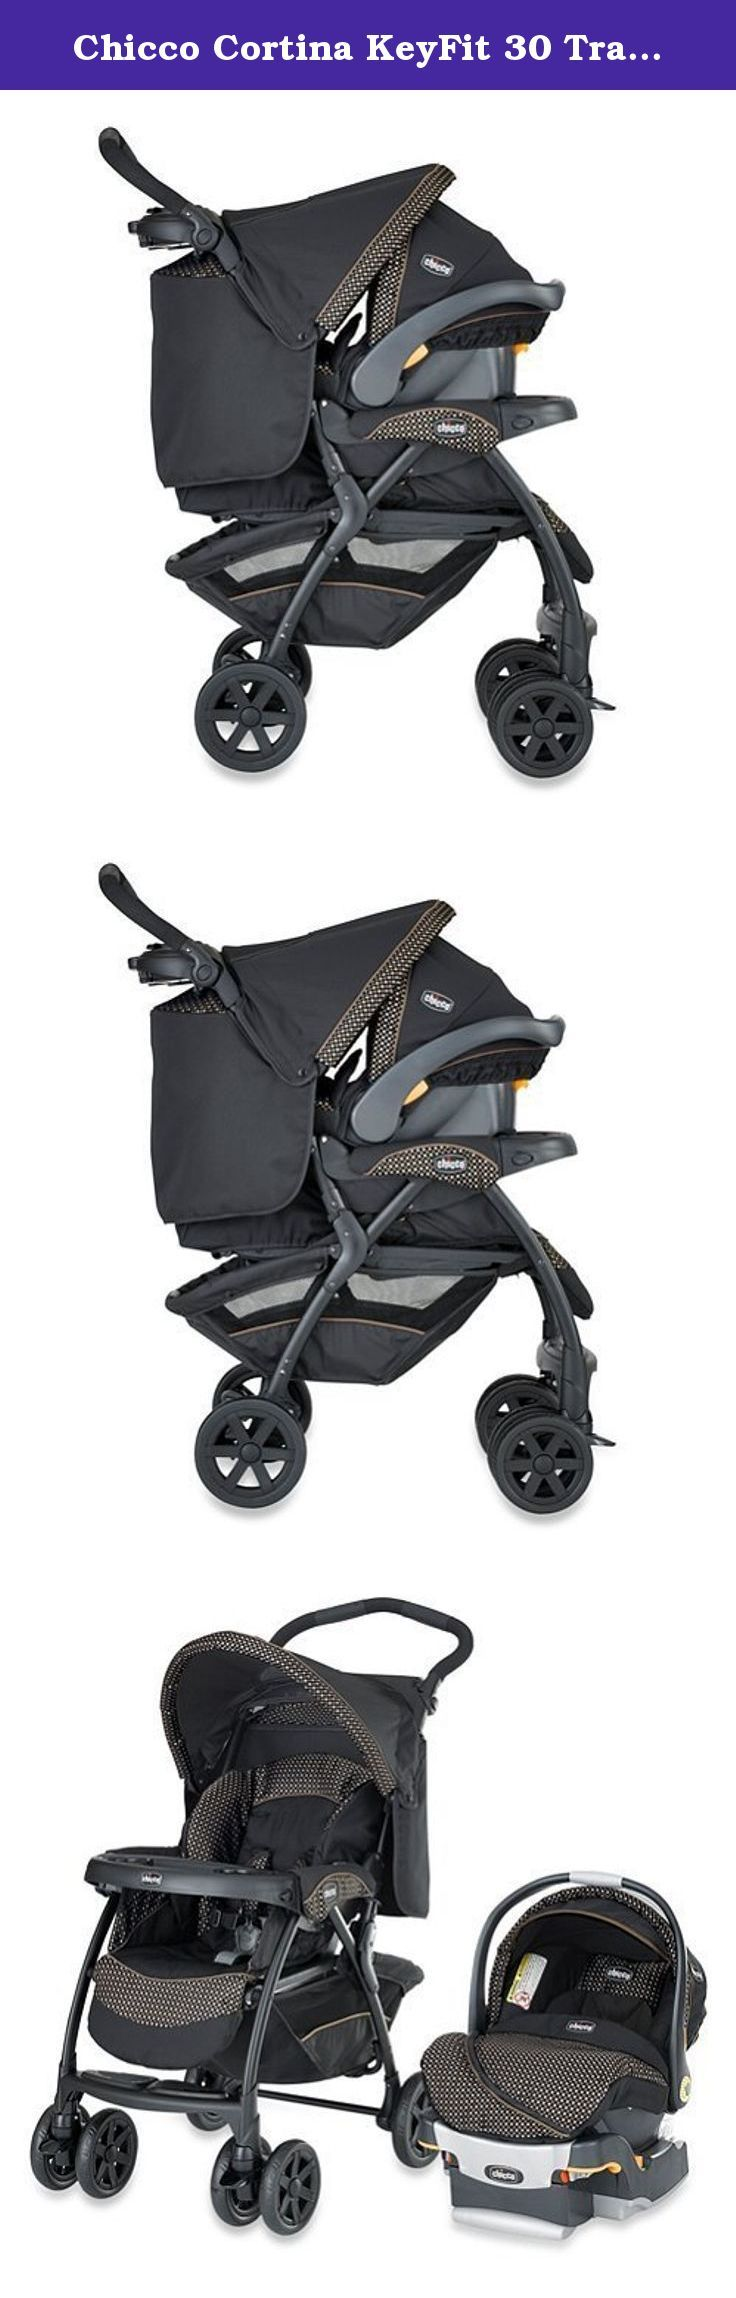 """Chicco Cortina KeyFit 30 Travel System in Minerale Set. •Stroller also features a multi-position leg rest, reversible canopy and all wheel suspension. •The infant car seat has energy-absorbing foam for improved side-impact protection and a removable newborn insert for smaller babies. •The thickly cushioned seat pad and 5-point harness provide maximum comfort. •Car seat also features a spring-assisted level foot, bubble levels and """"Center-Pull"""" adjustment for easiest installation. •Large…"""